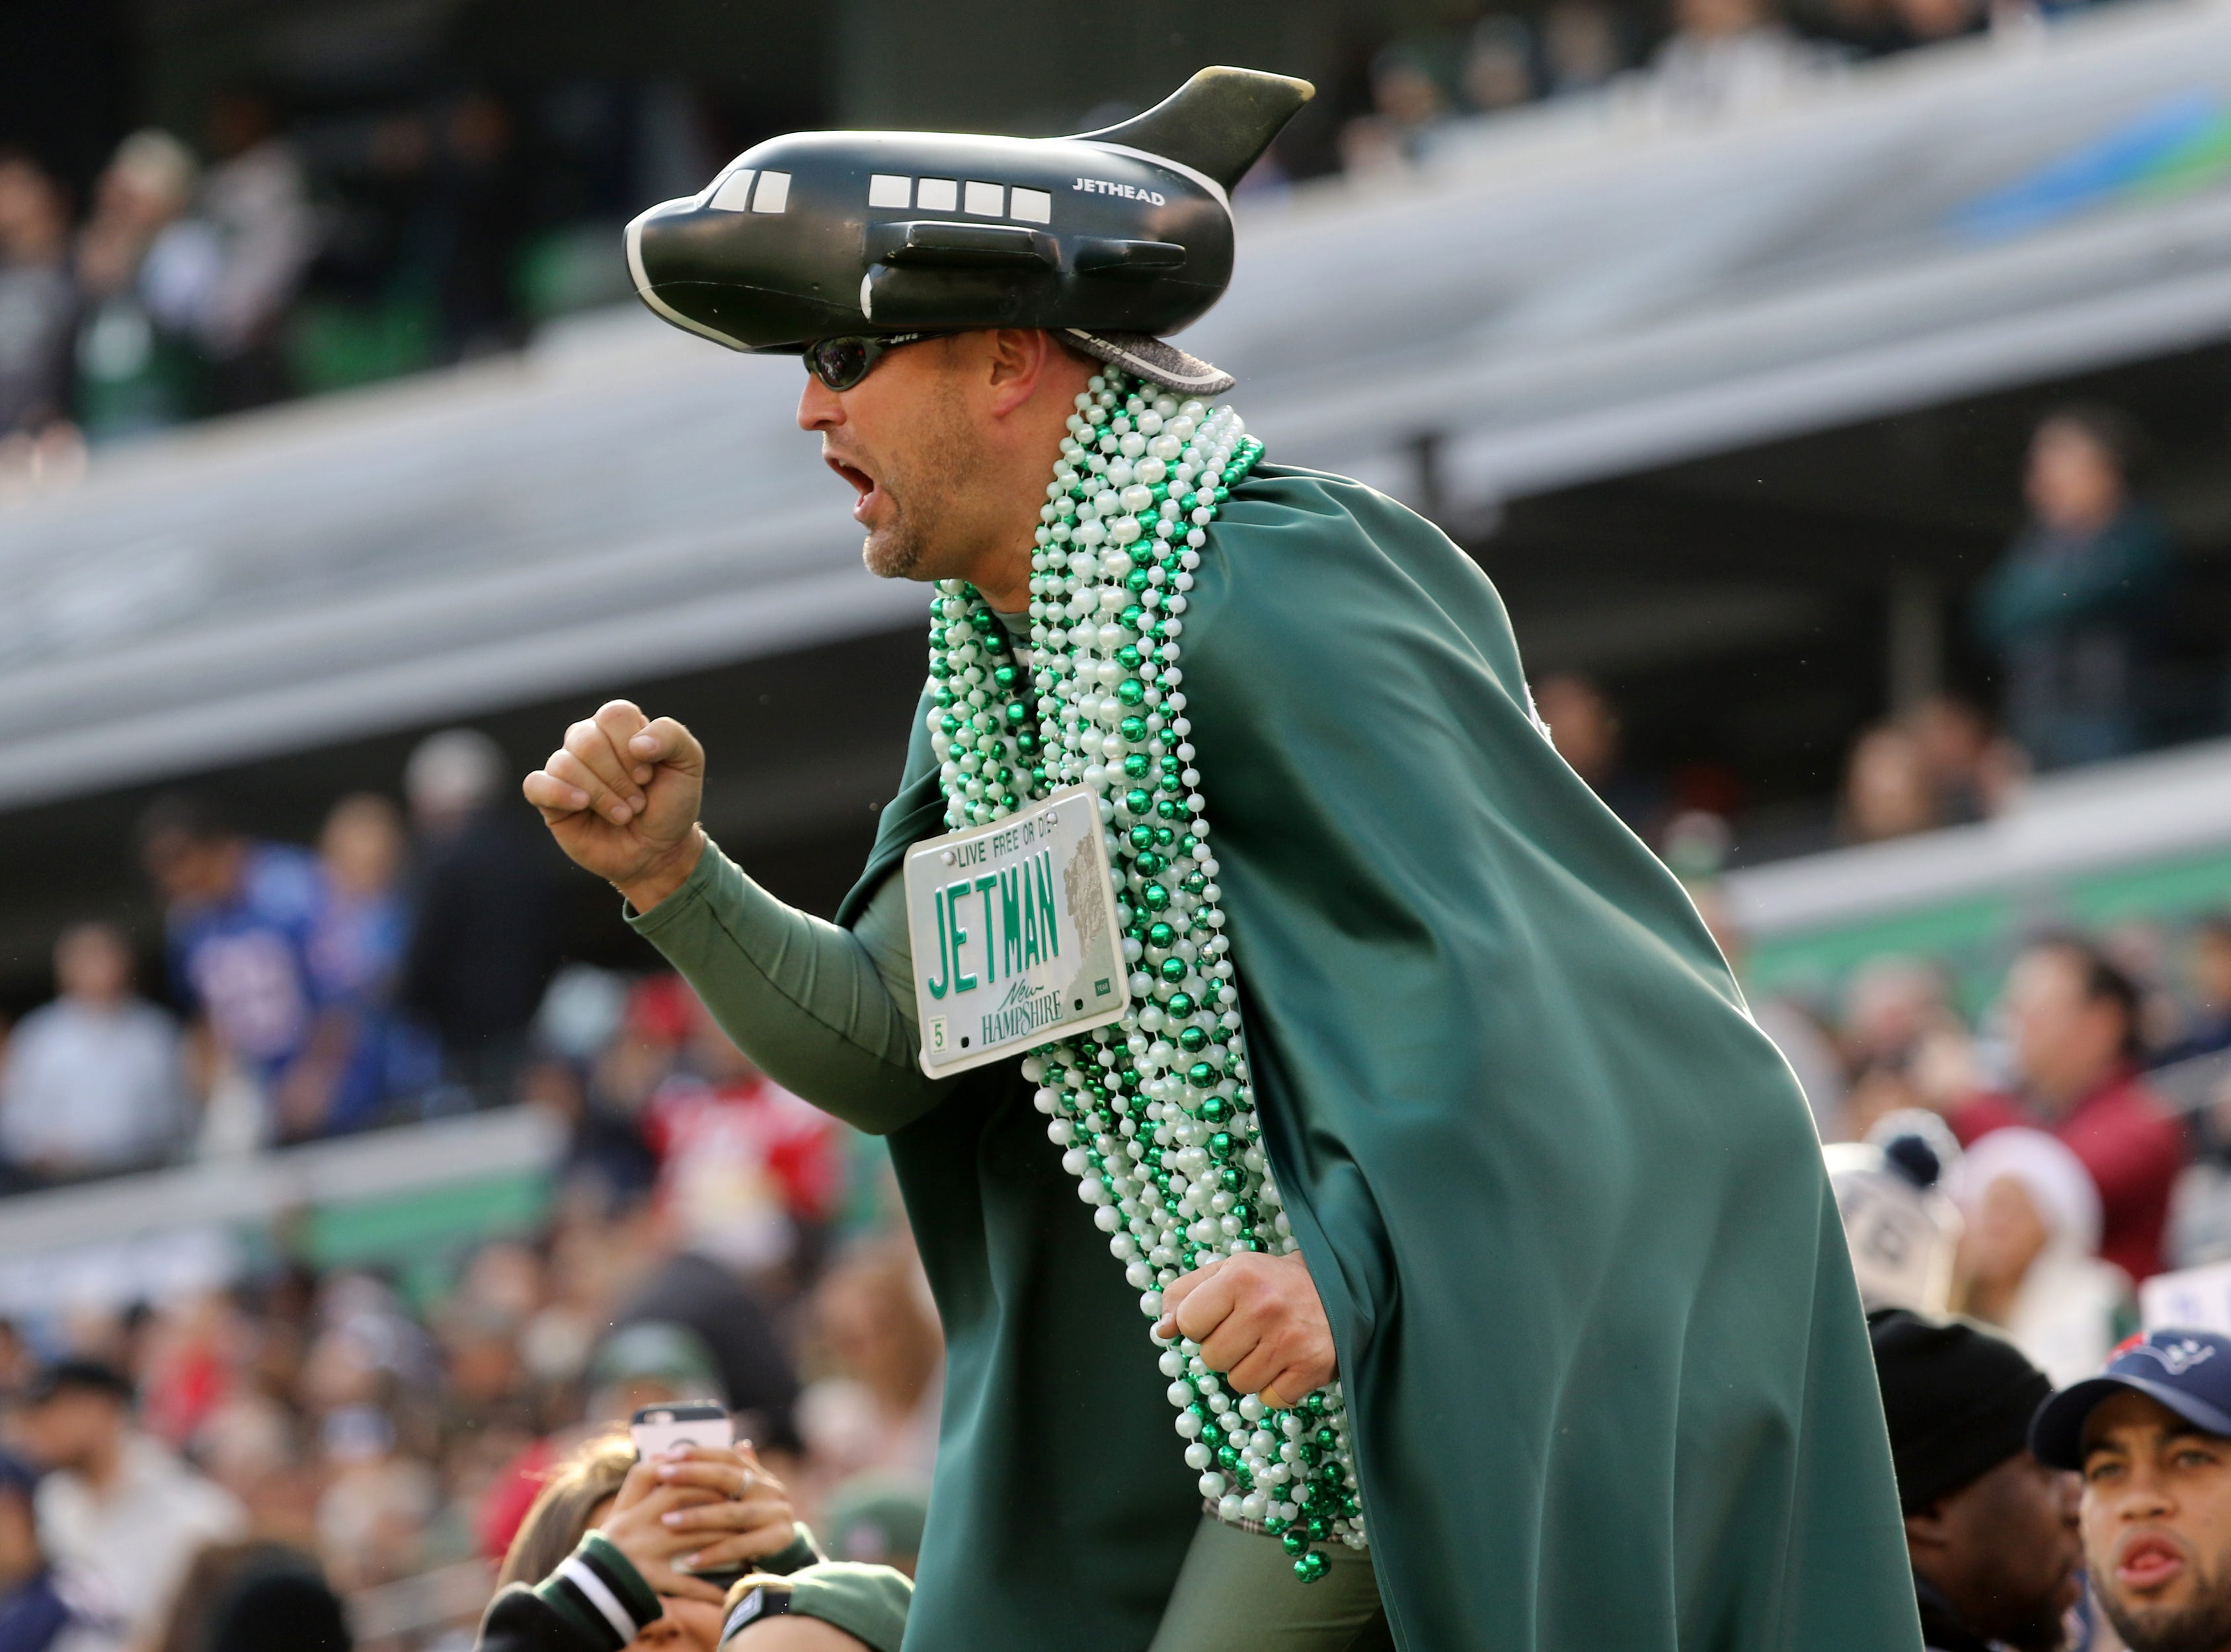 """Jets Man"" cheers on his team during the first half. Sunday, November 25, 2018"